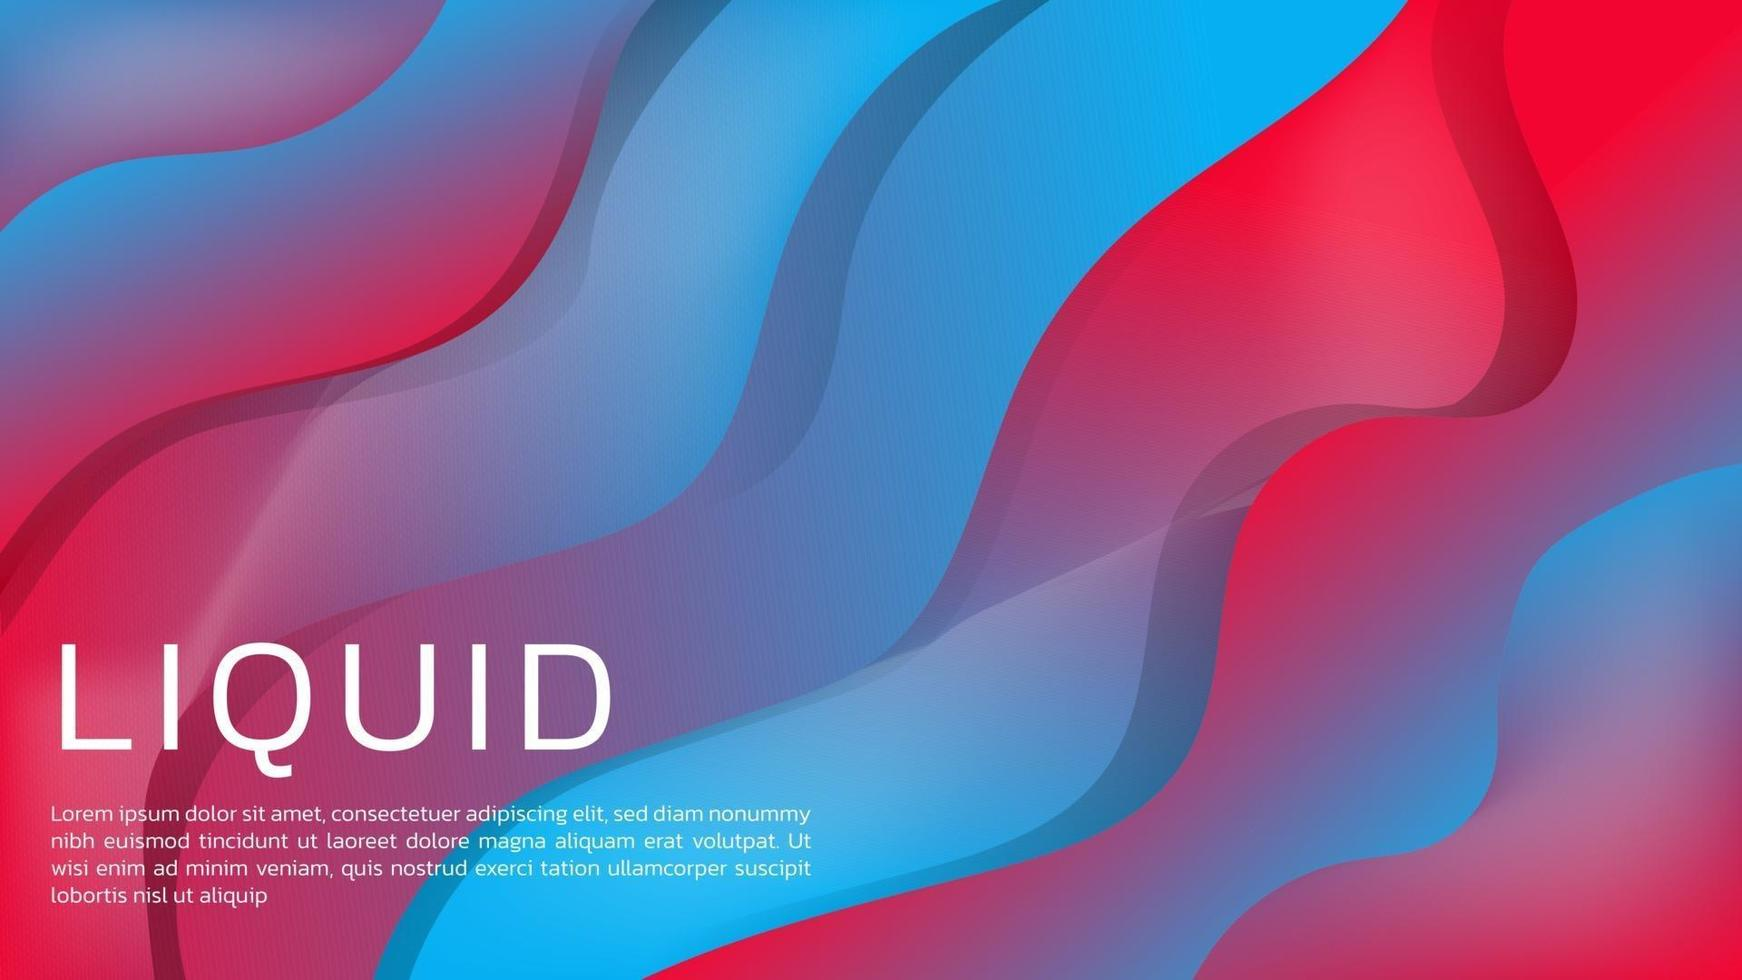 Liquid-Abstract 3D Liquid Gradient Background with Vibrant Color for Web Landing Page and Wallpaper vector